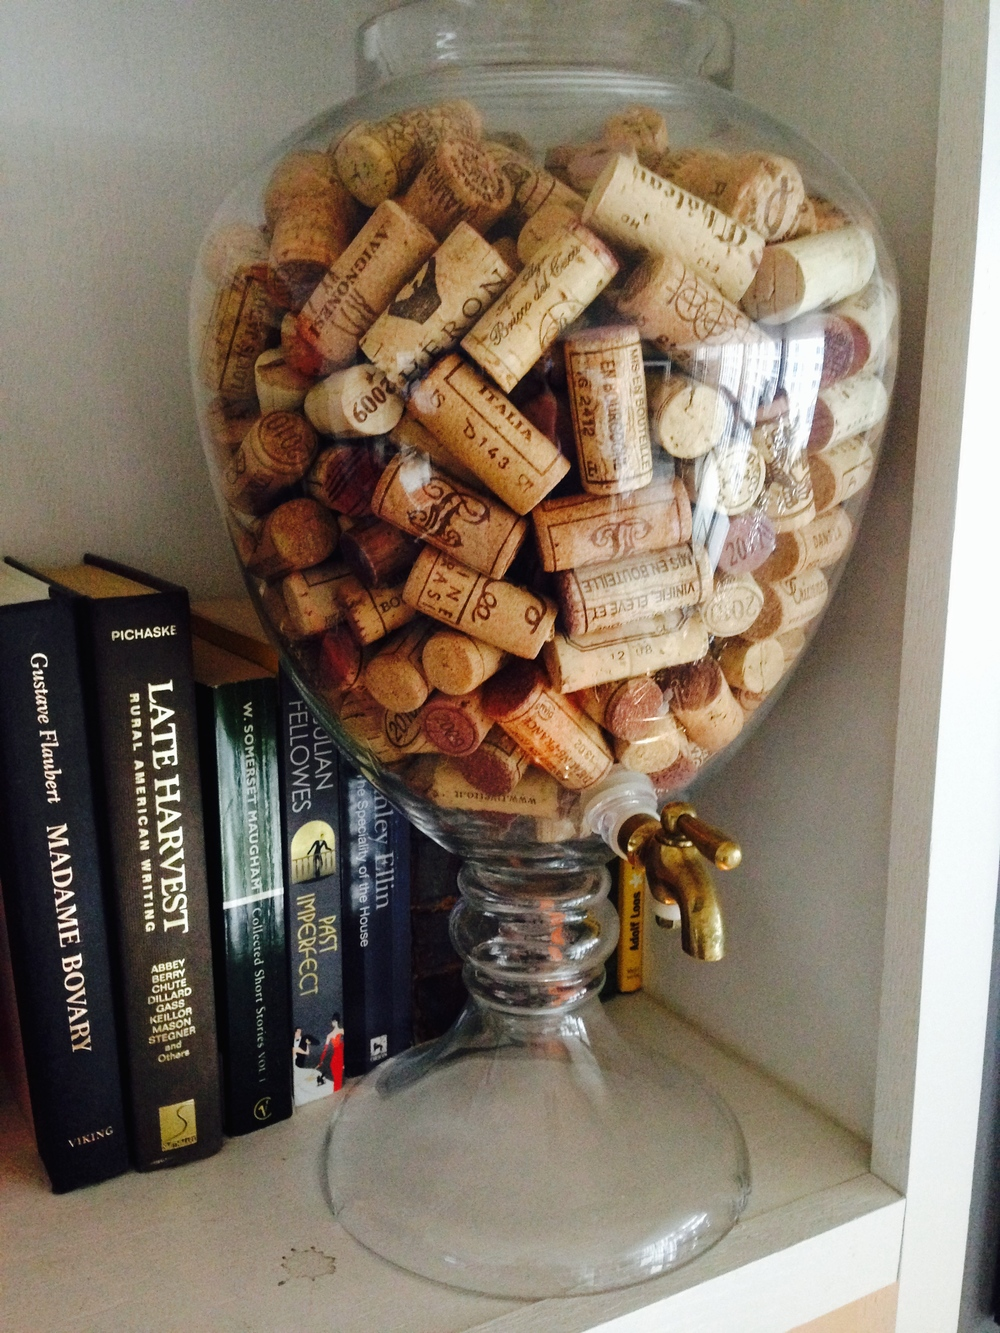 The guilty urn, retired along with Madame Bovary, to a shelf where it holds nothing more potent than old corks.